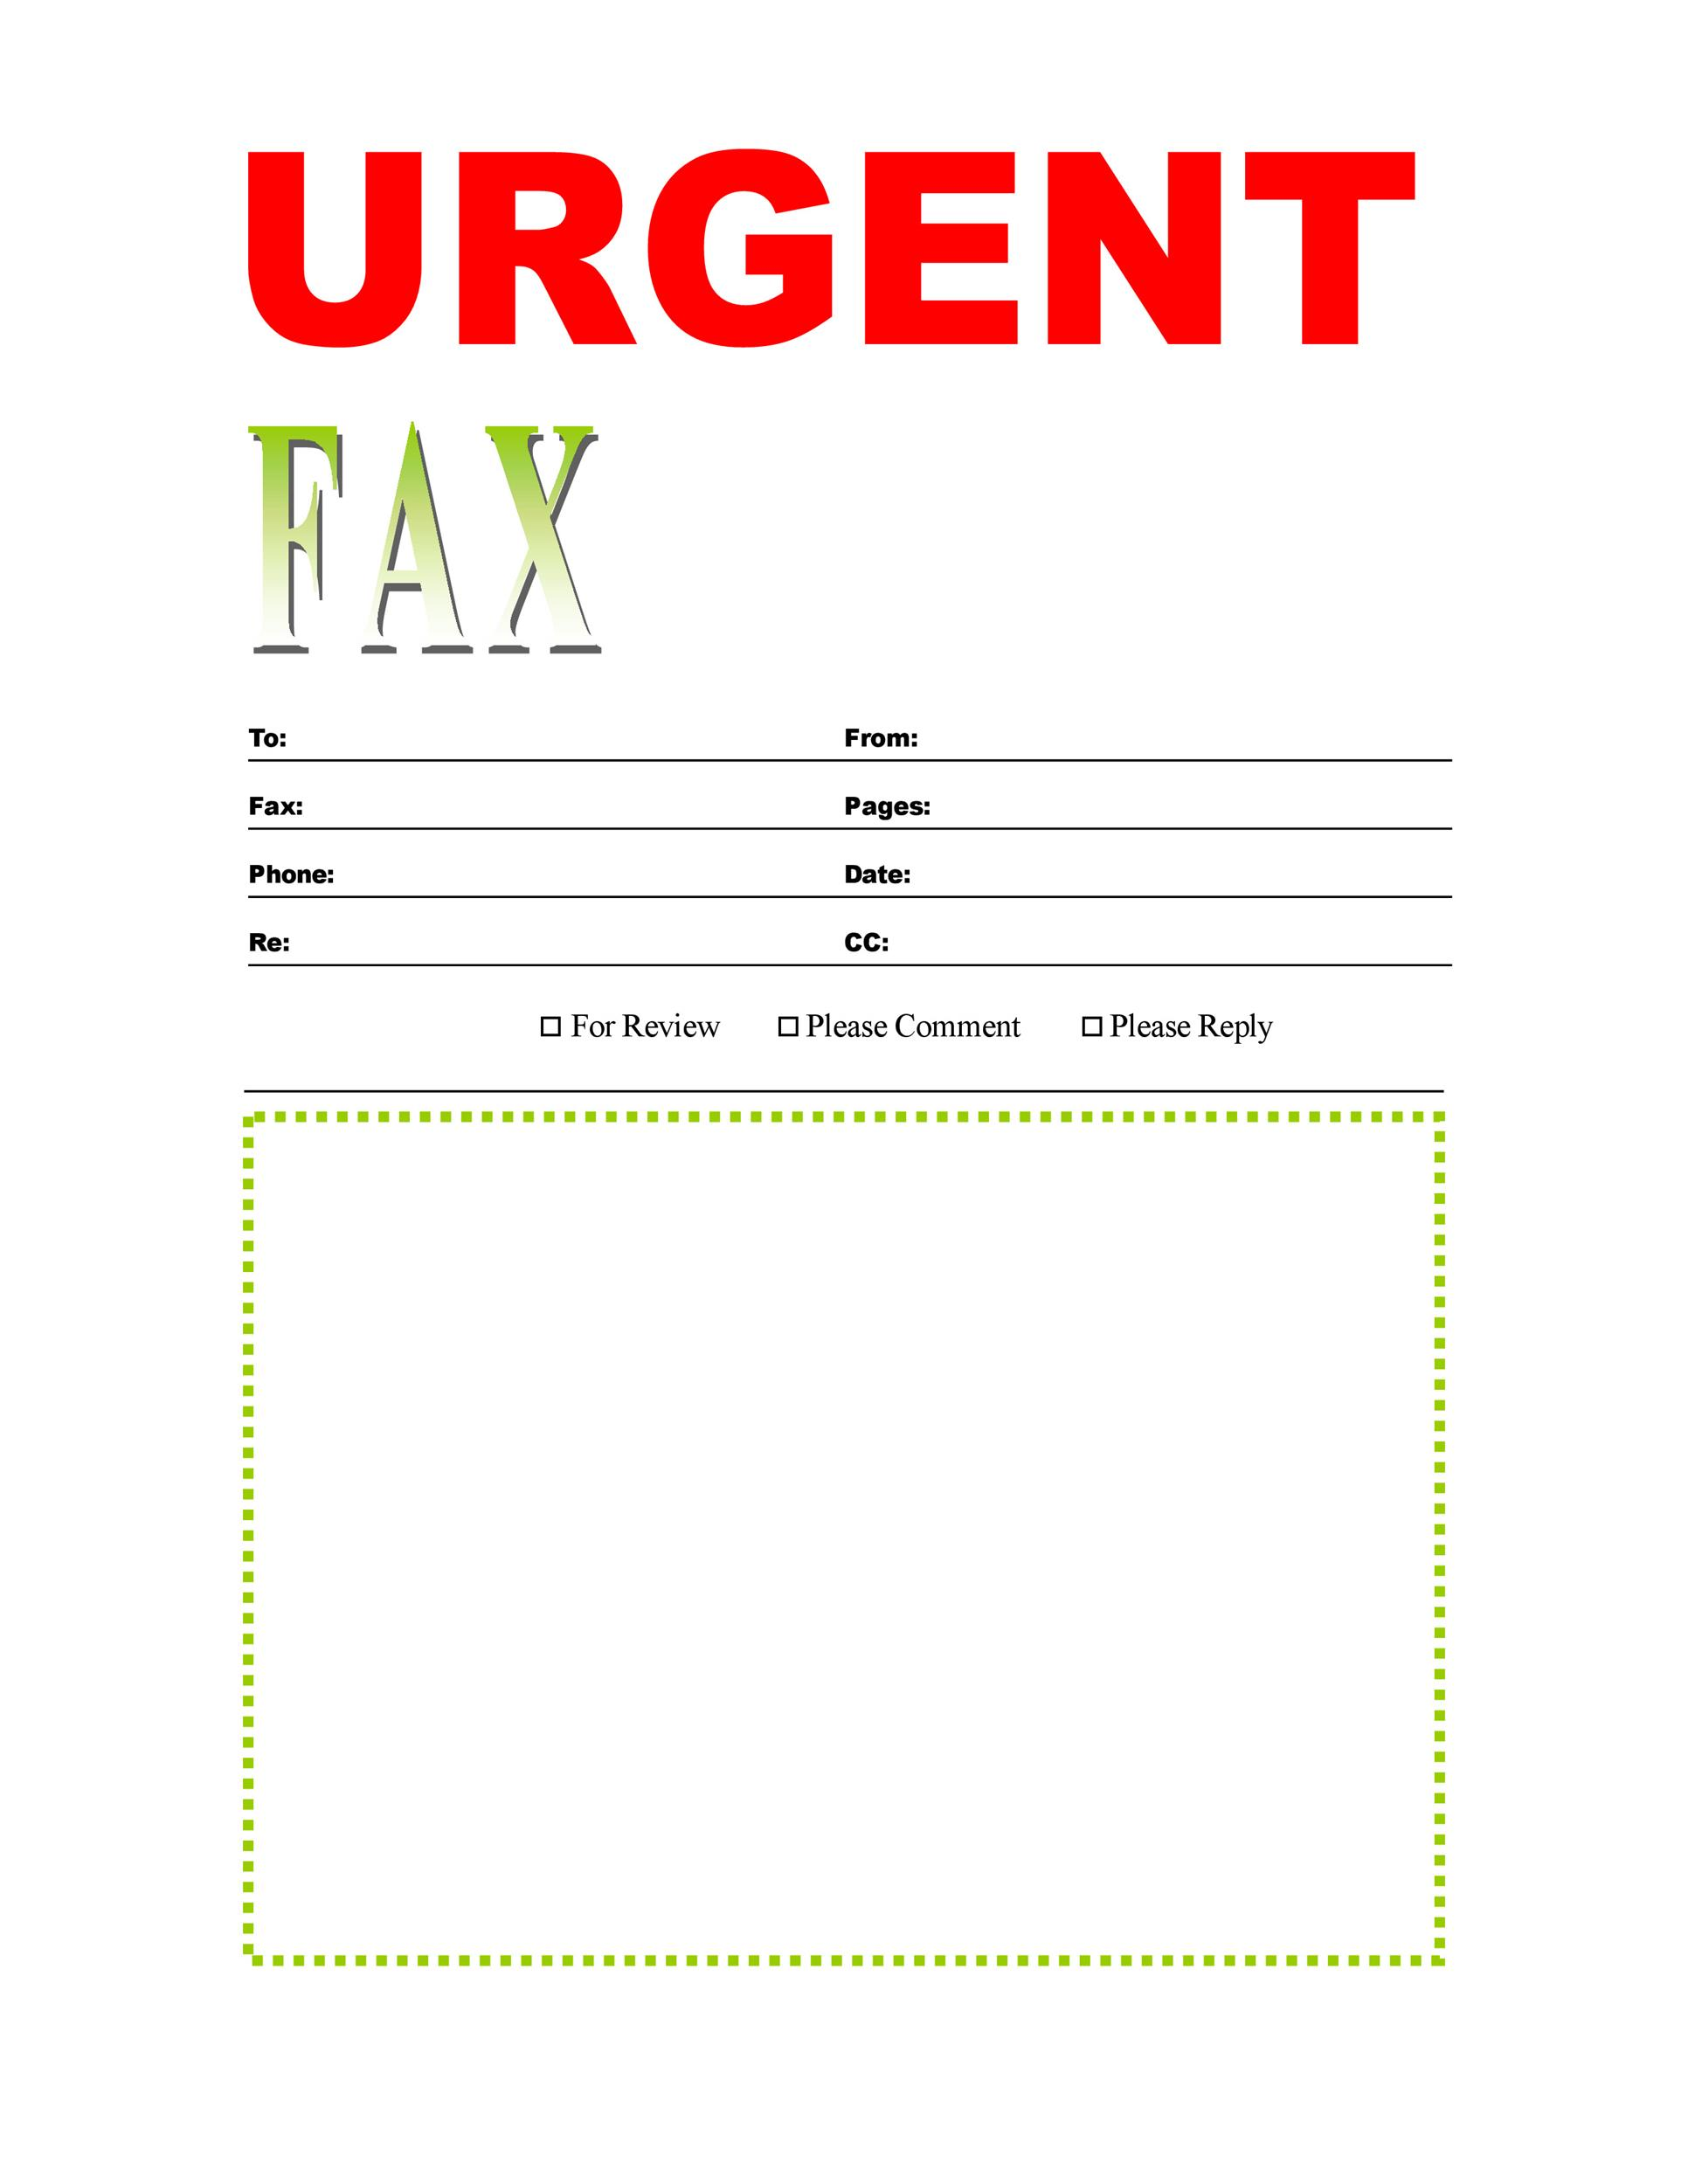 Printable Fax Cover Sheet Template 08  Fax Cover Sheet Download